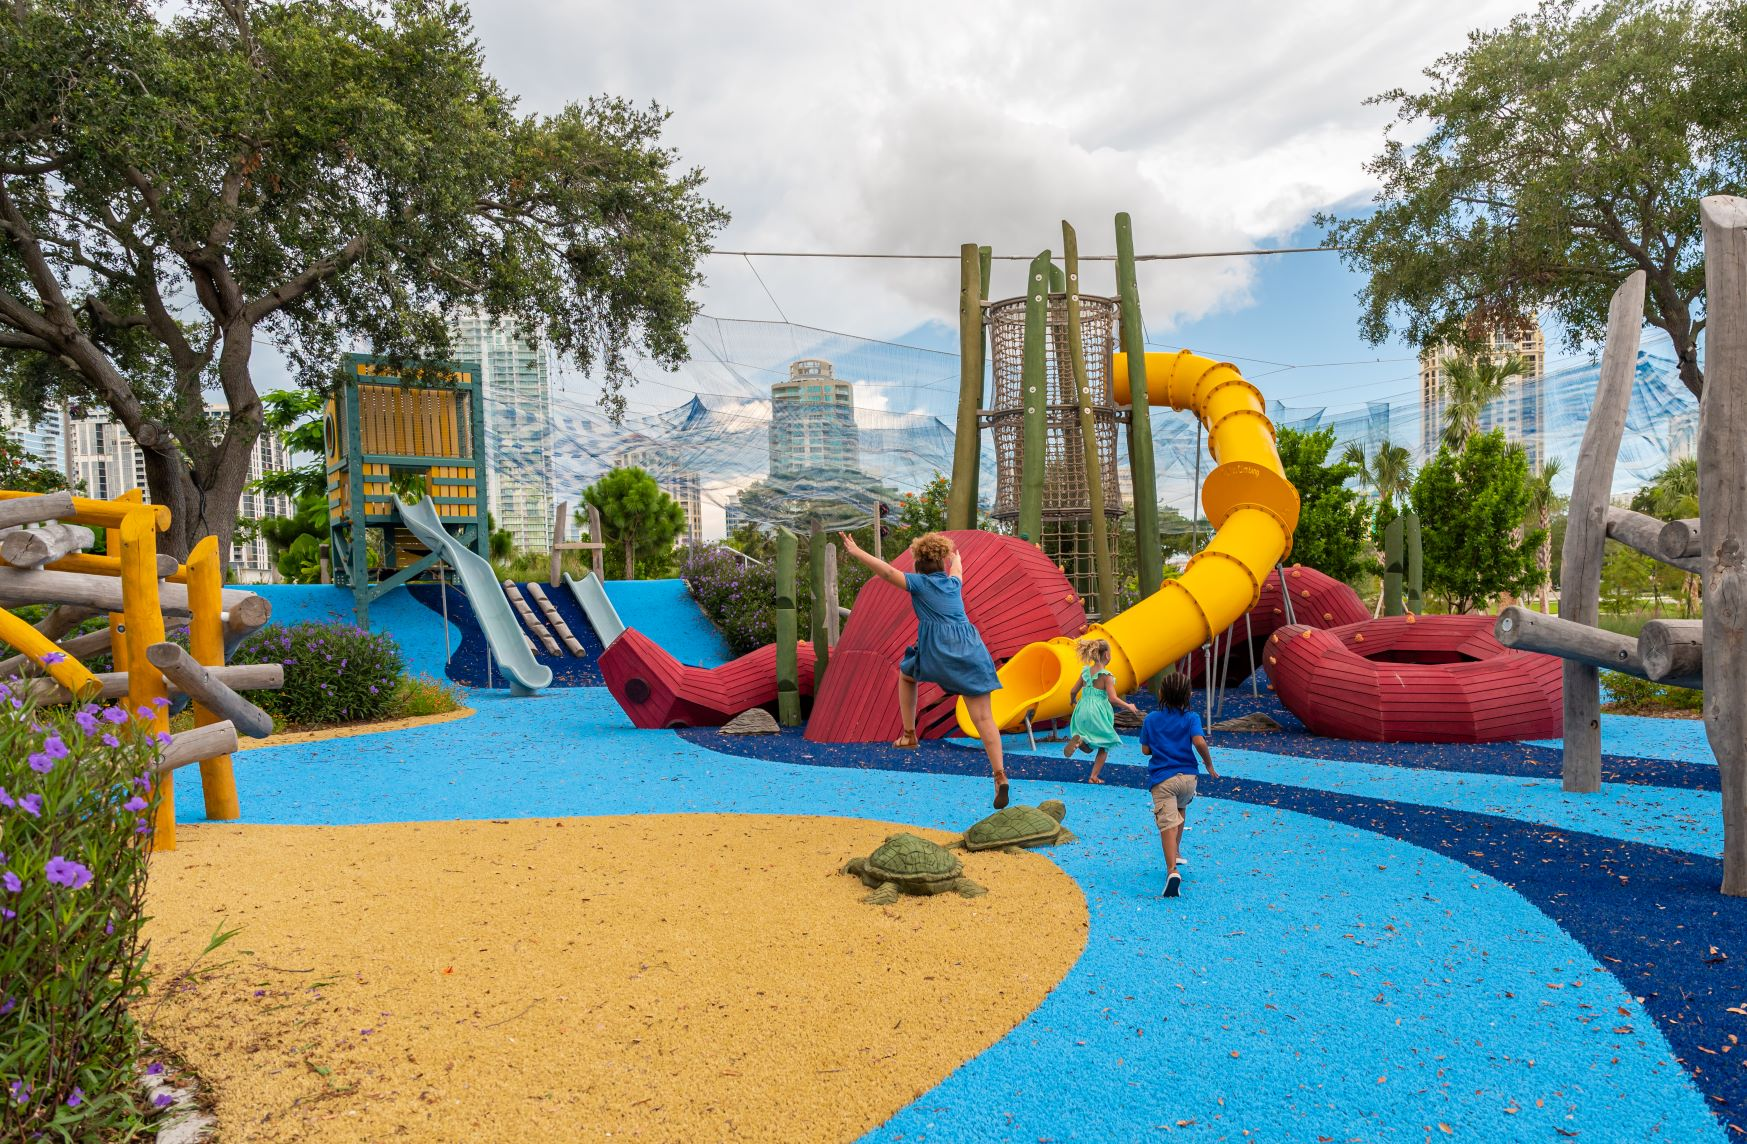 Children frolic at the City of St. Petersburg's pier playground, now officially named The Glazer Family Playground, with the skyline backdrop. Photo: City of St. Petersburg.